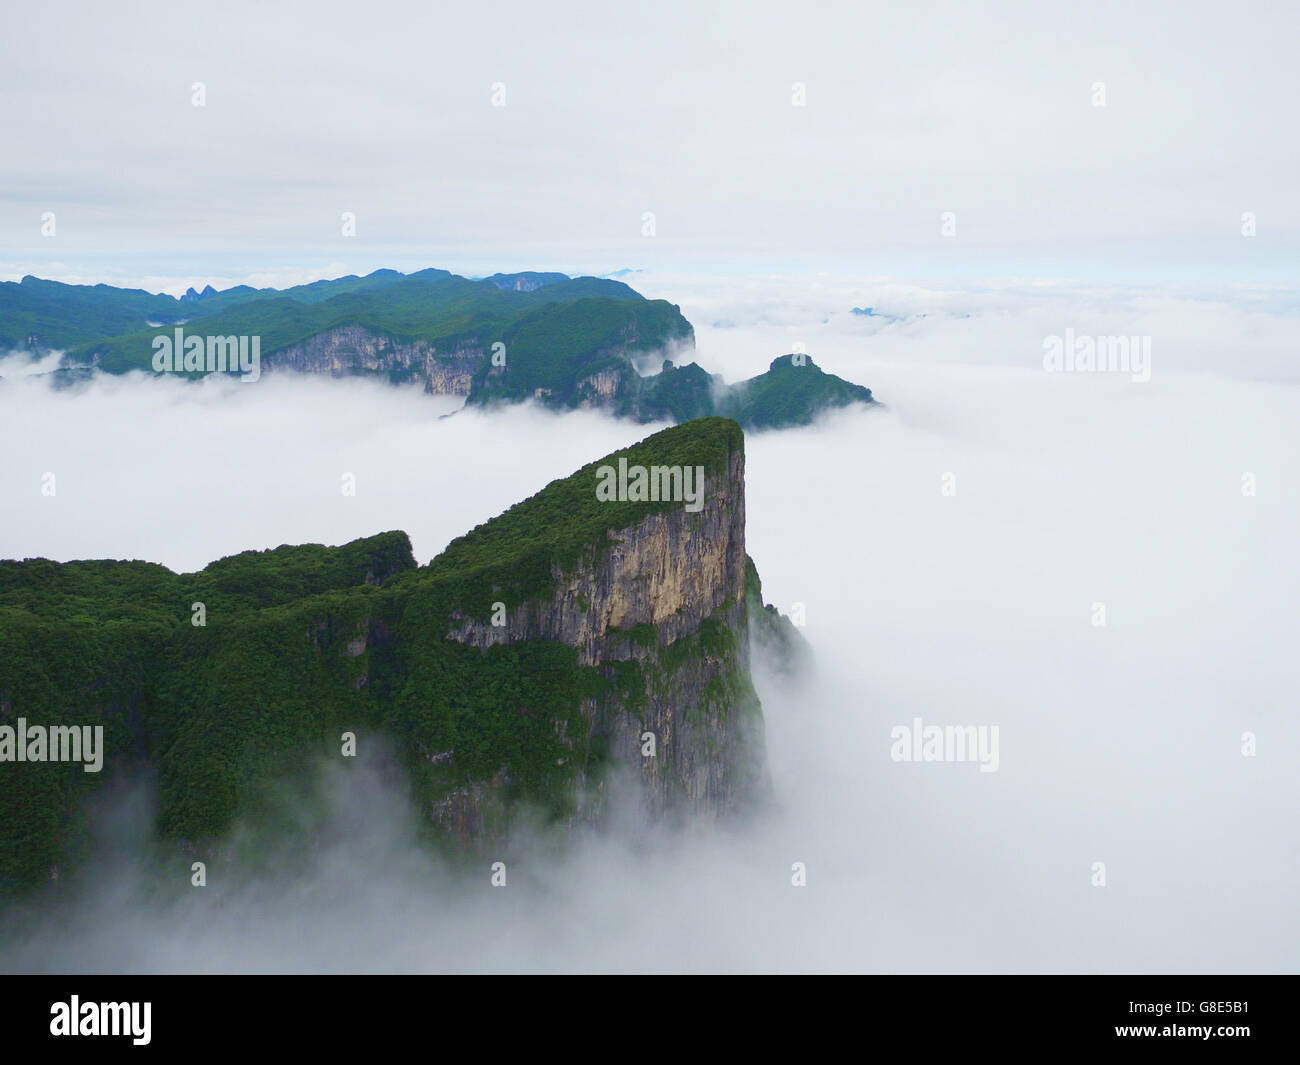 Zhangjiajie. 29th June, 2016. Photo taken on June 29, 2016 shows the scenery of Tianmen Mountain surrounded by fogs - Stock Image